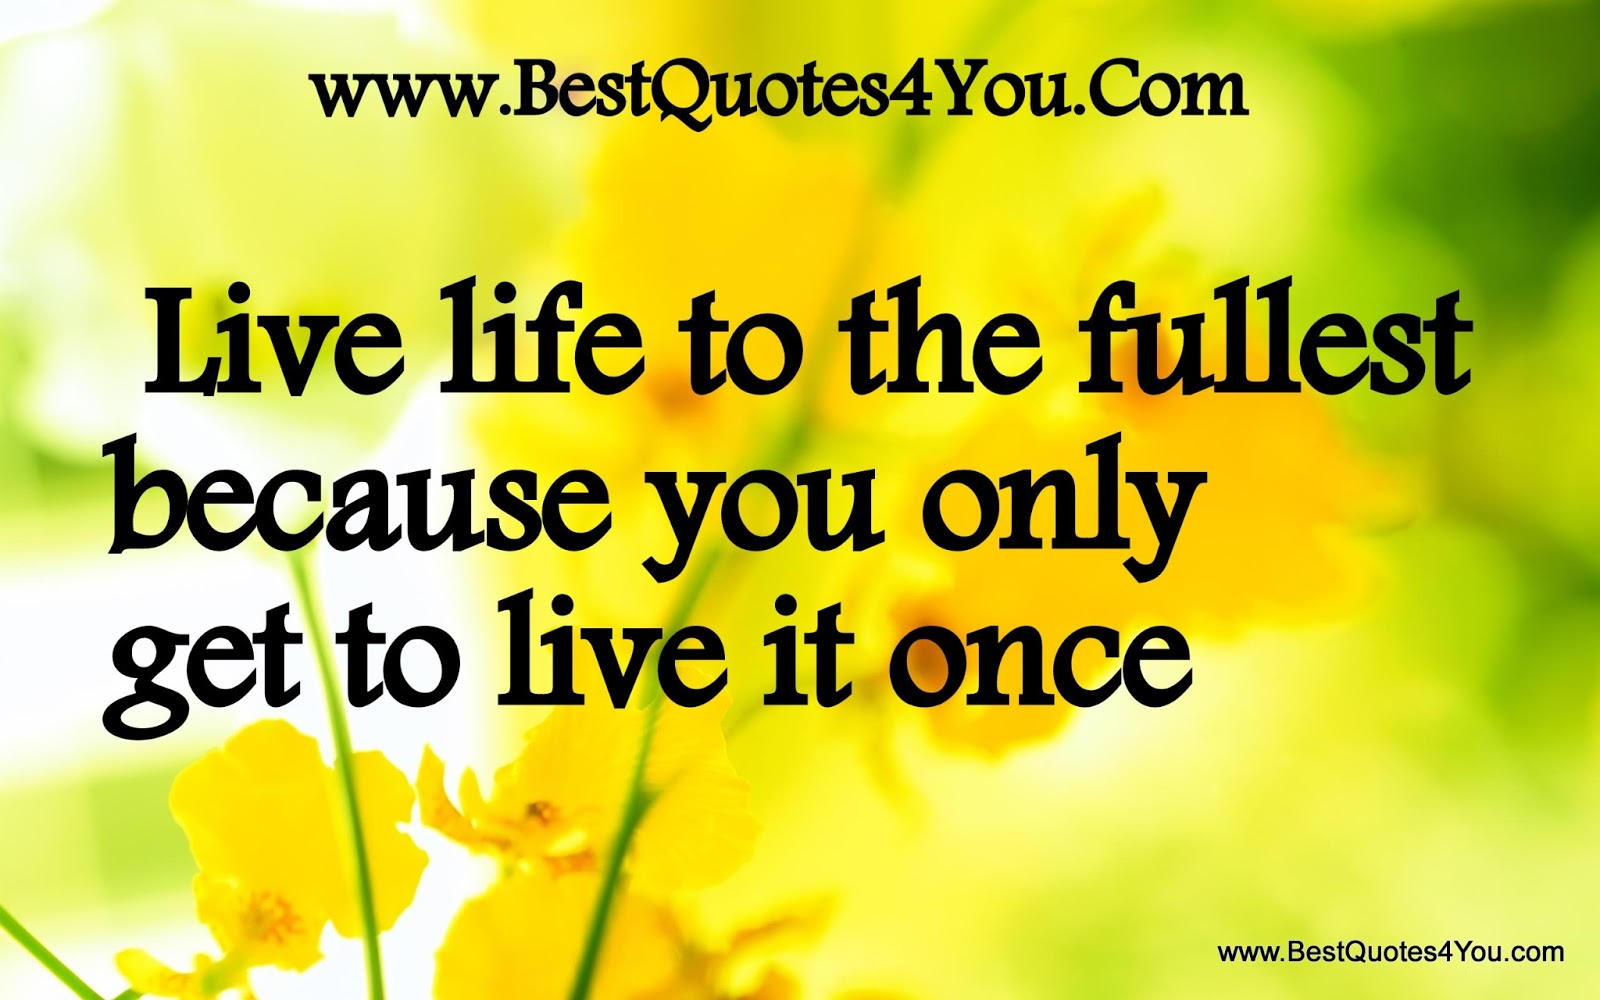 Rhyming Life Quotes Live Life Quotes Living Life To The Full  Quotes Photos